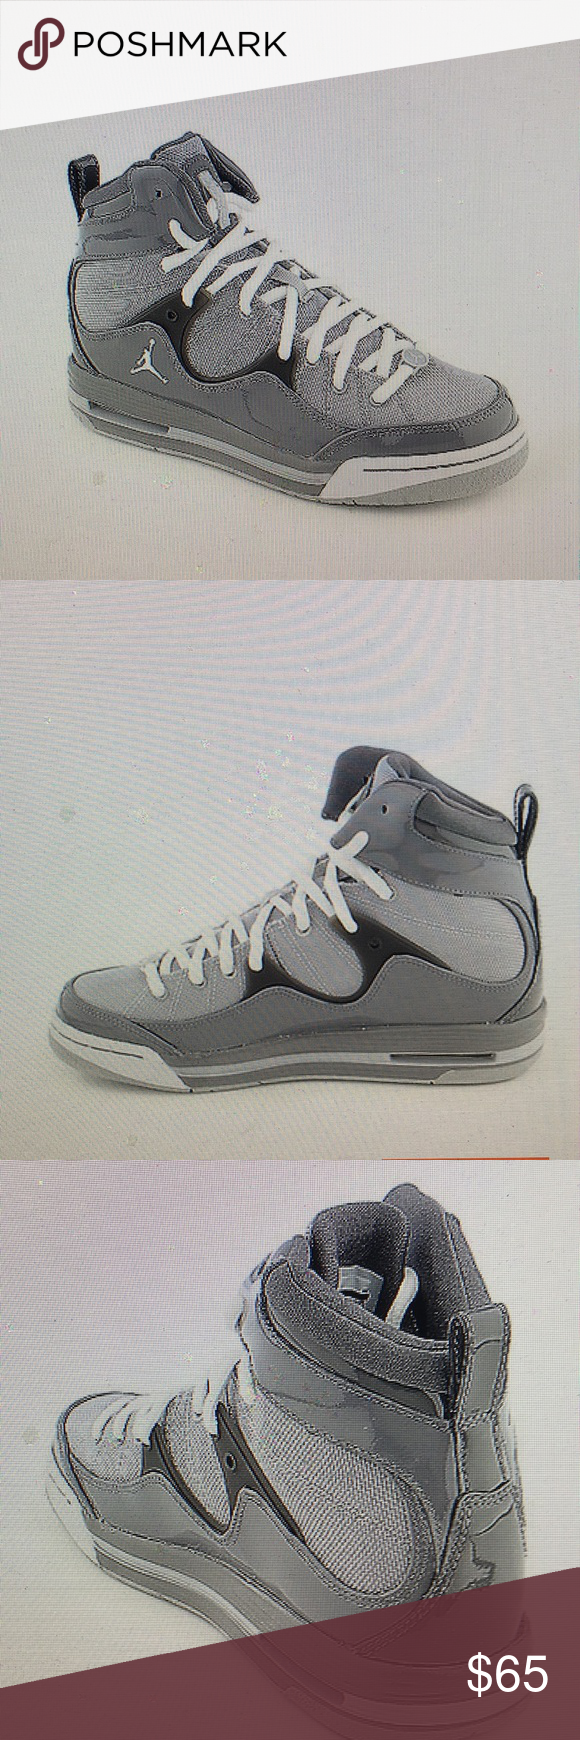 4c74f847d49b48 ... Black Light Safeguards - Graphite White  Jordan Flight TR 97 Grey White  basketball sneakers Patent mesh leather Viz air unit in heel ...